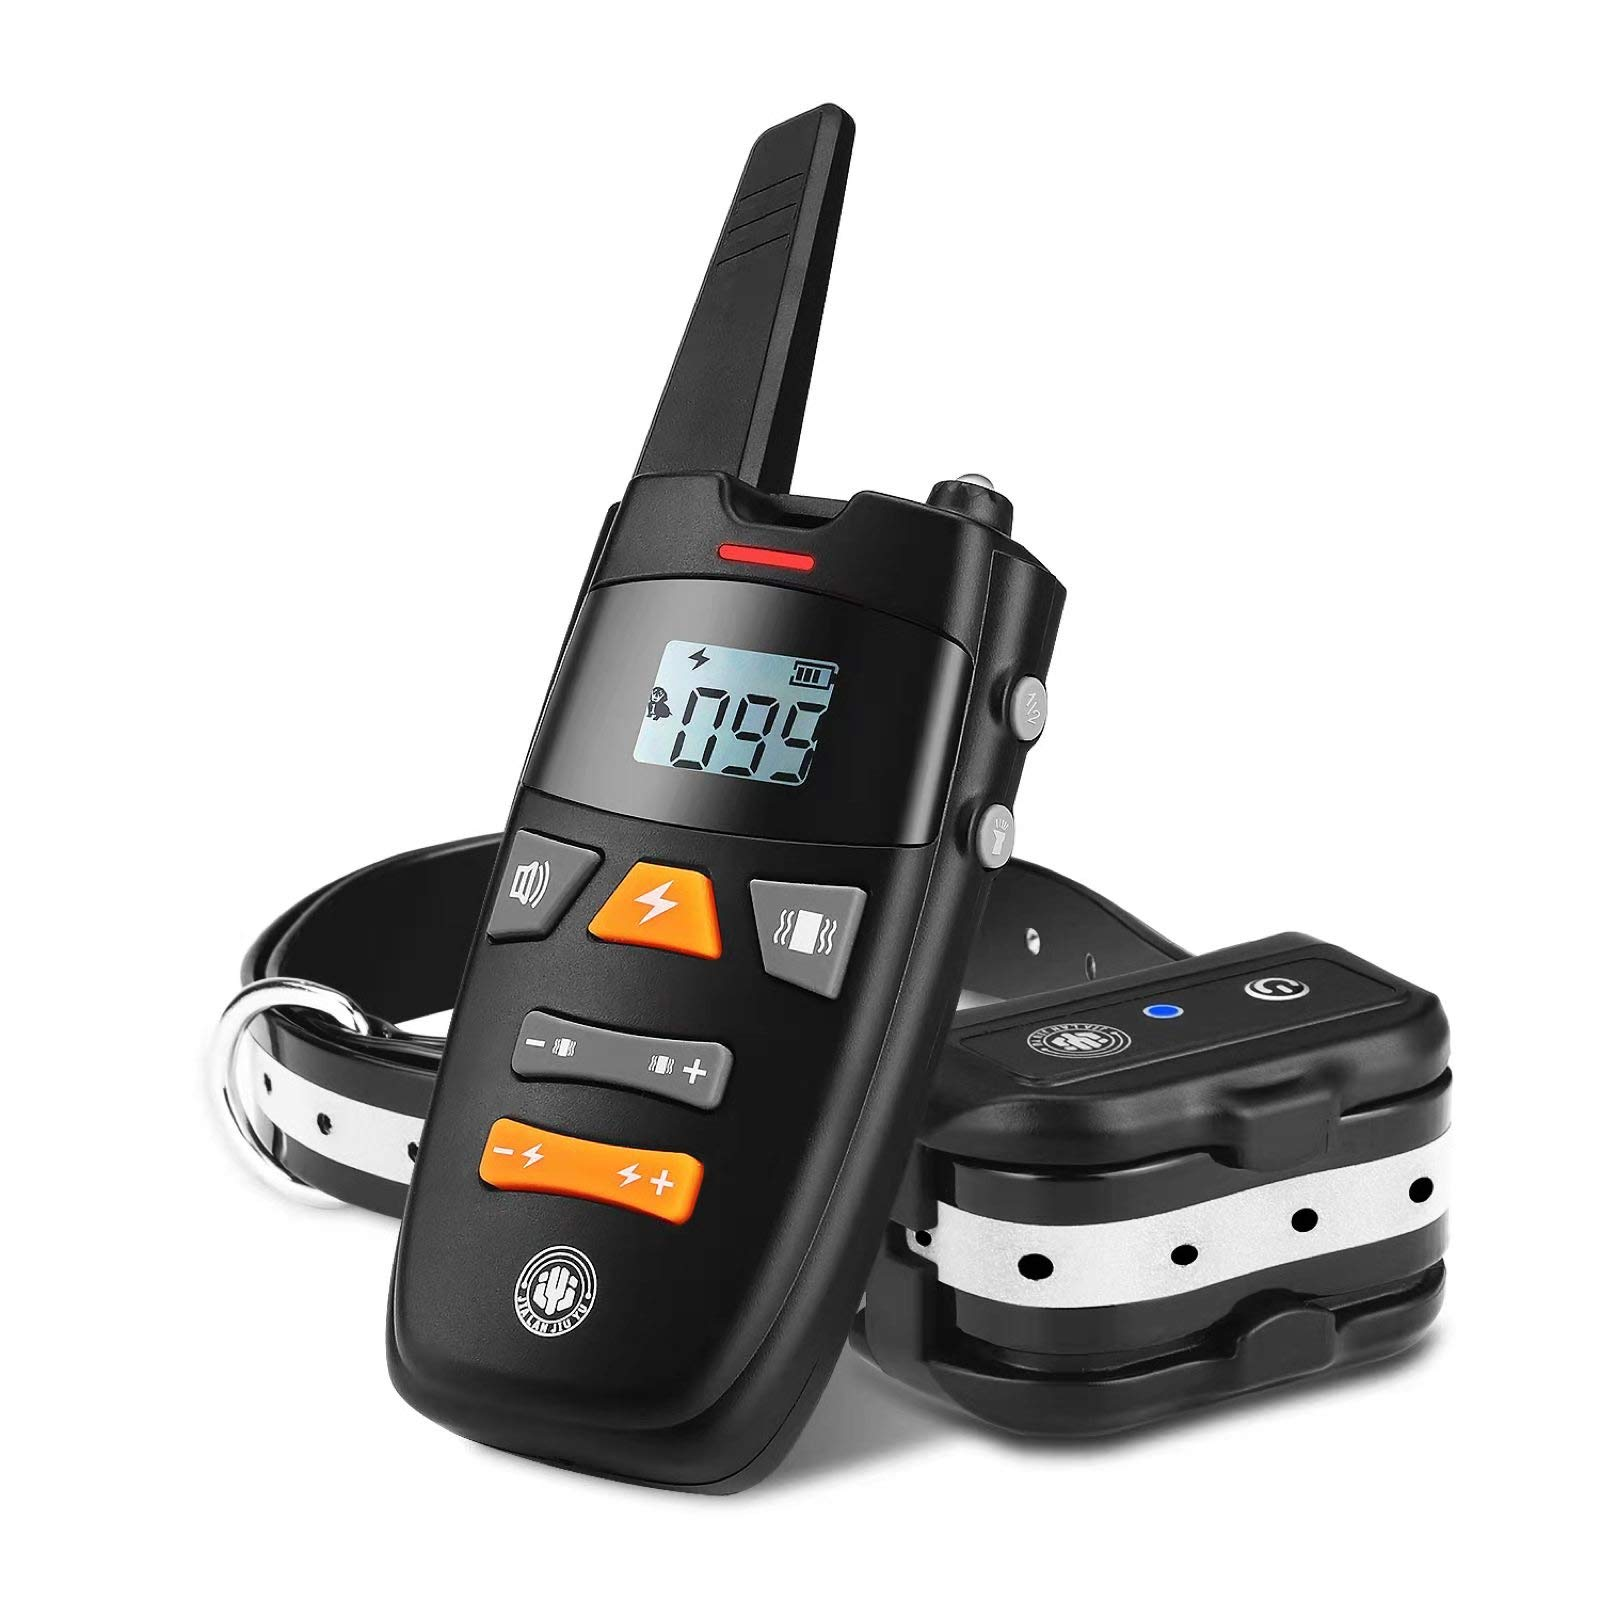 JIALANJIUYU Dog Training Collar,Rechargeable Shock Collar for Dogs, E-Collar up to 1800FT Remote Range, Beep/Vibration/Shock 3 Training Modes,100% Waterproof Shock Training Collar Dogs (Black-A77) by JIALANJIUYU